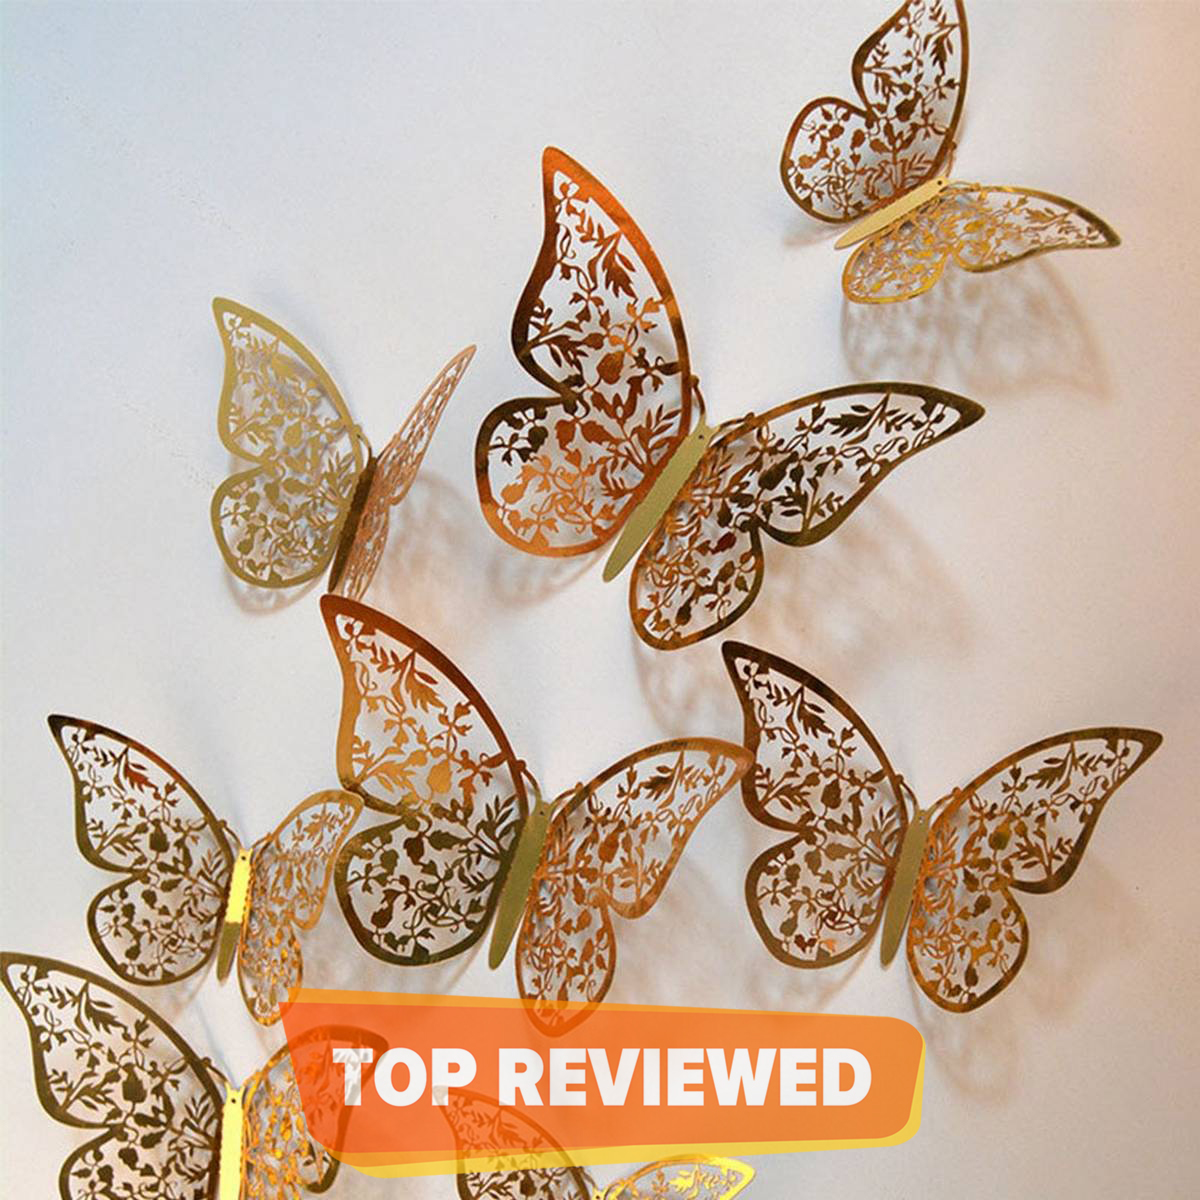 3D Golden Butterfly Mirror Wall Sticker Home Decoration (PACK OF 12)